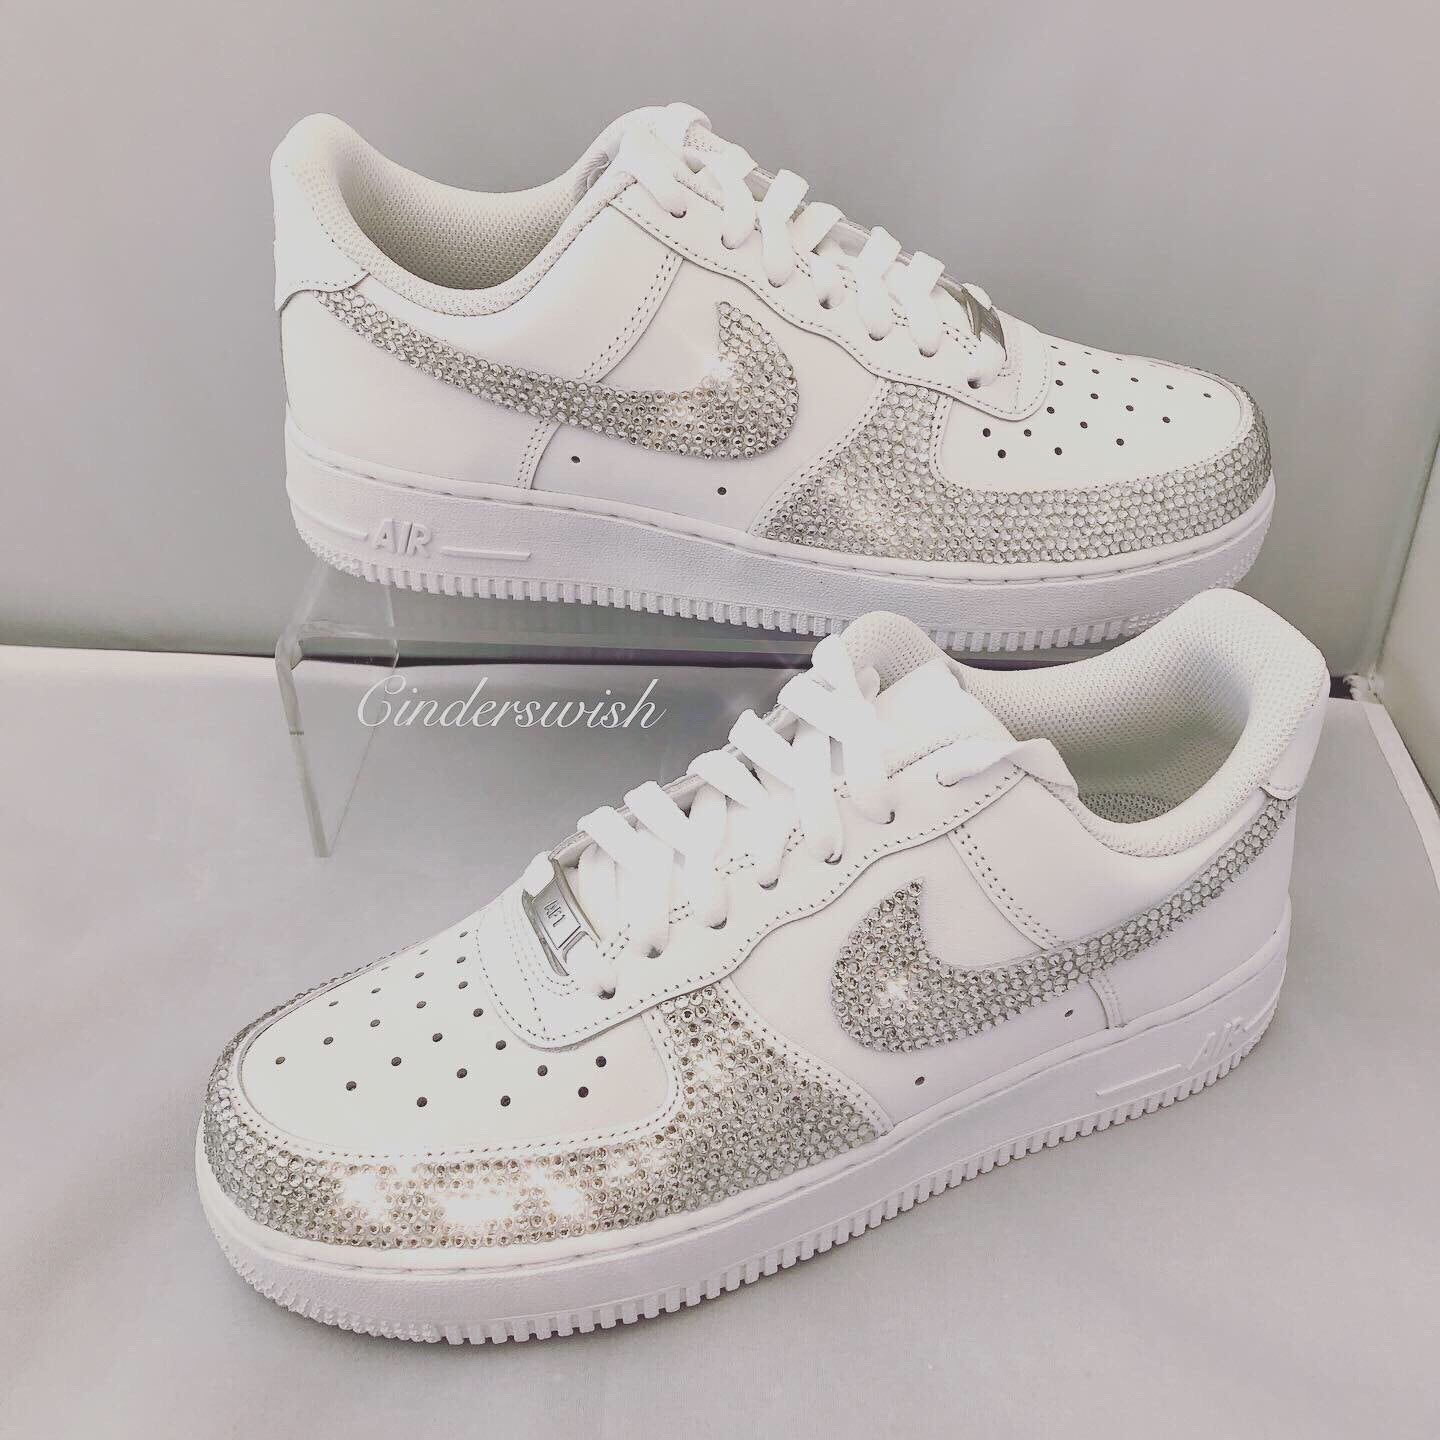 nike air force con brillantini